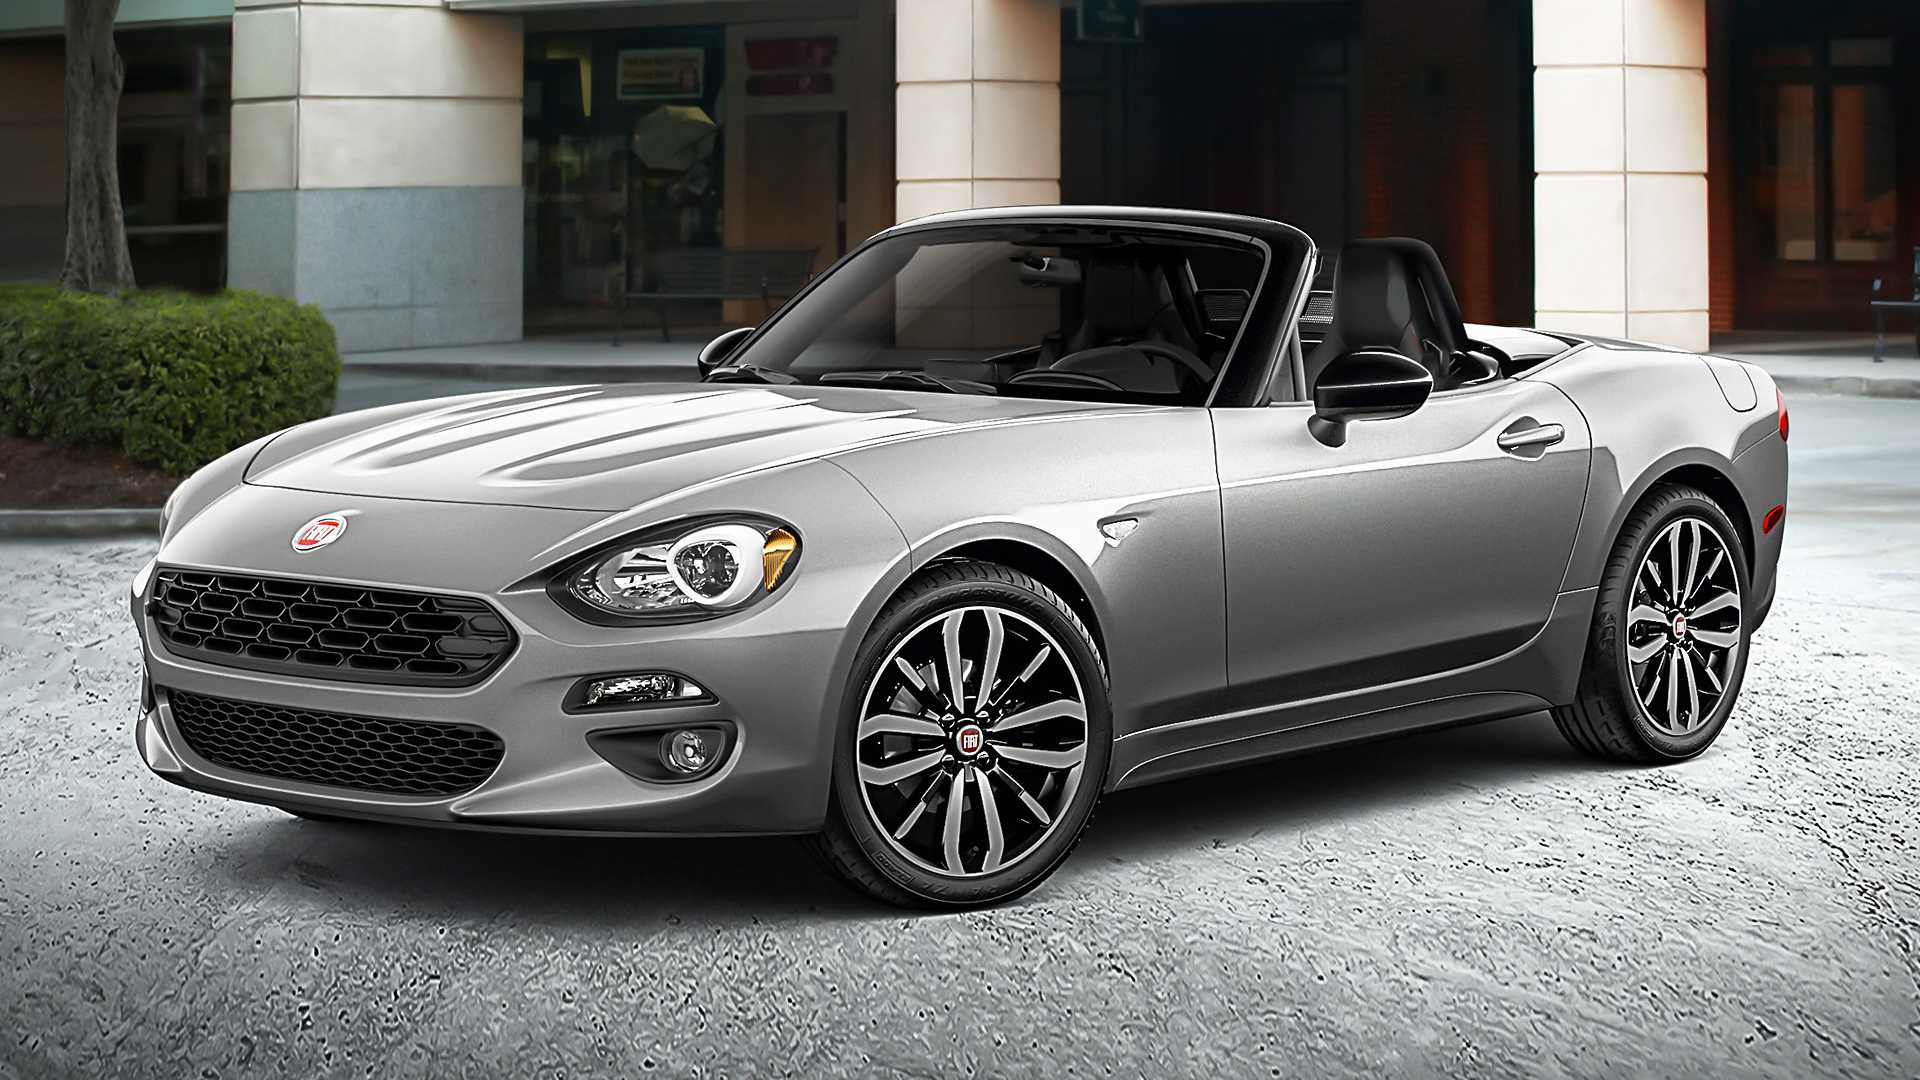 Fiat 124 Spider Abarth >> 2019 Fiat 124 Spider Urbana Edition Debuts With Visual Upgrades